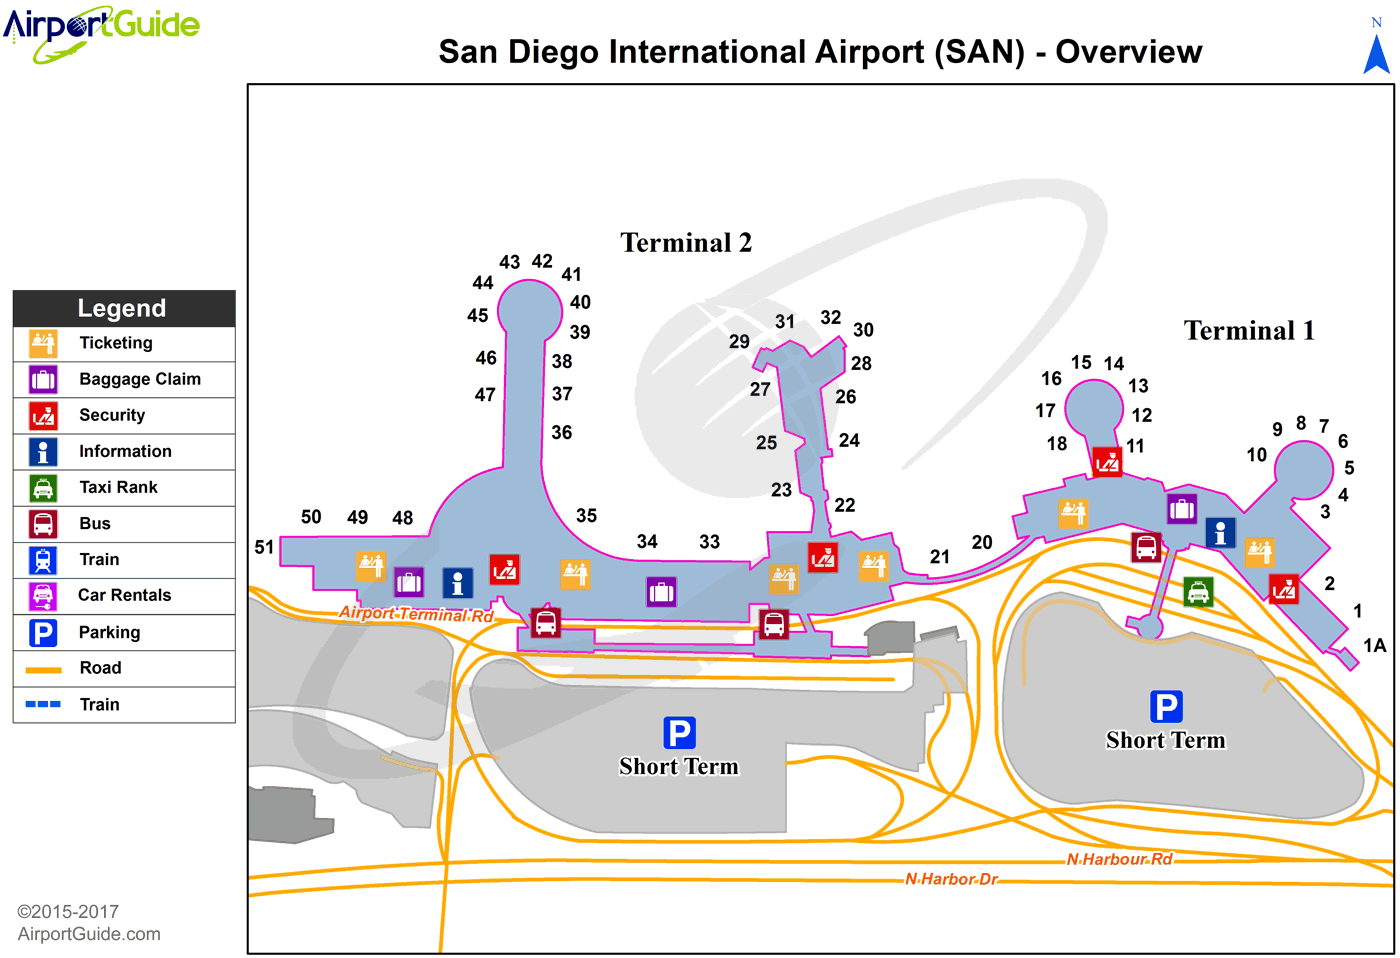 San Diego Airport Terminal Map San Diego   San Diego International (SAN) Airport Terminal Map